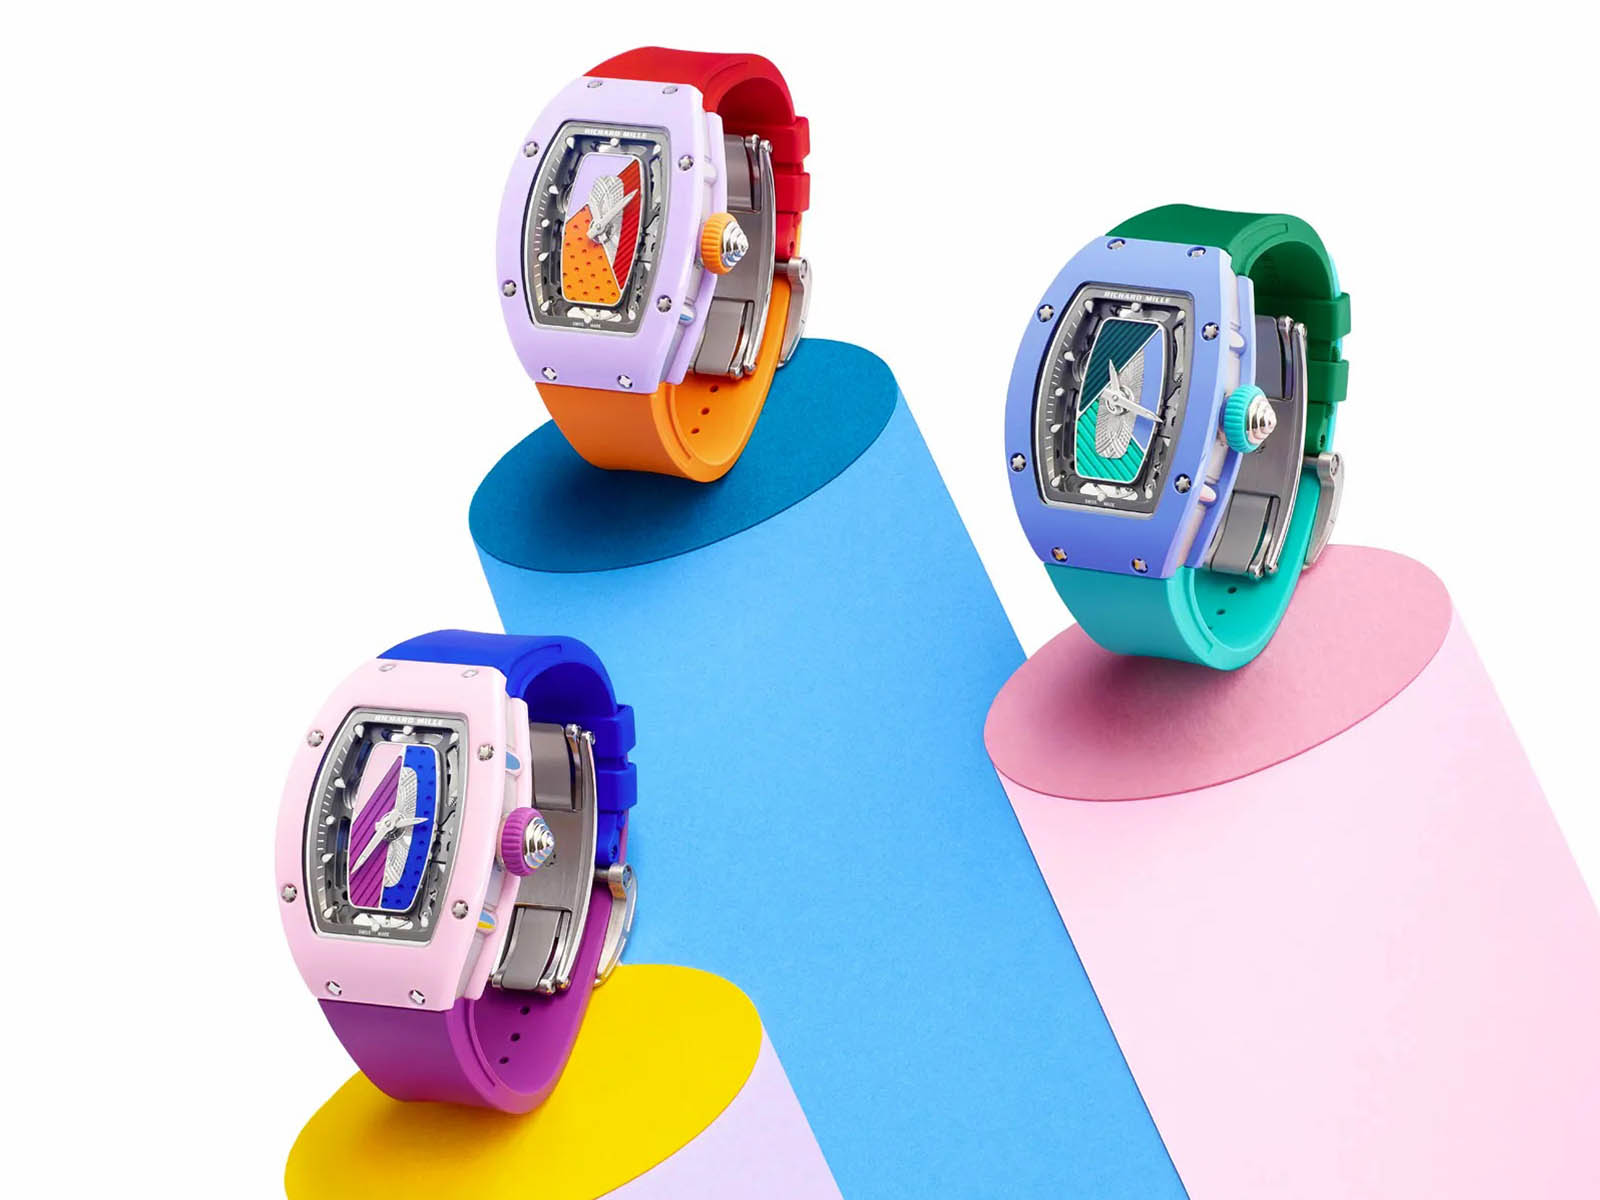 richard-mille-rm-07-01-colored-ceramics-collection-3.jpg